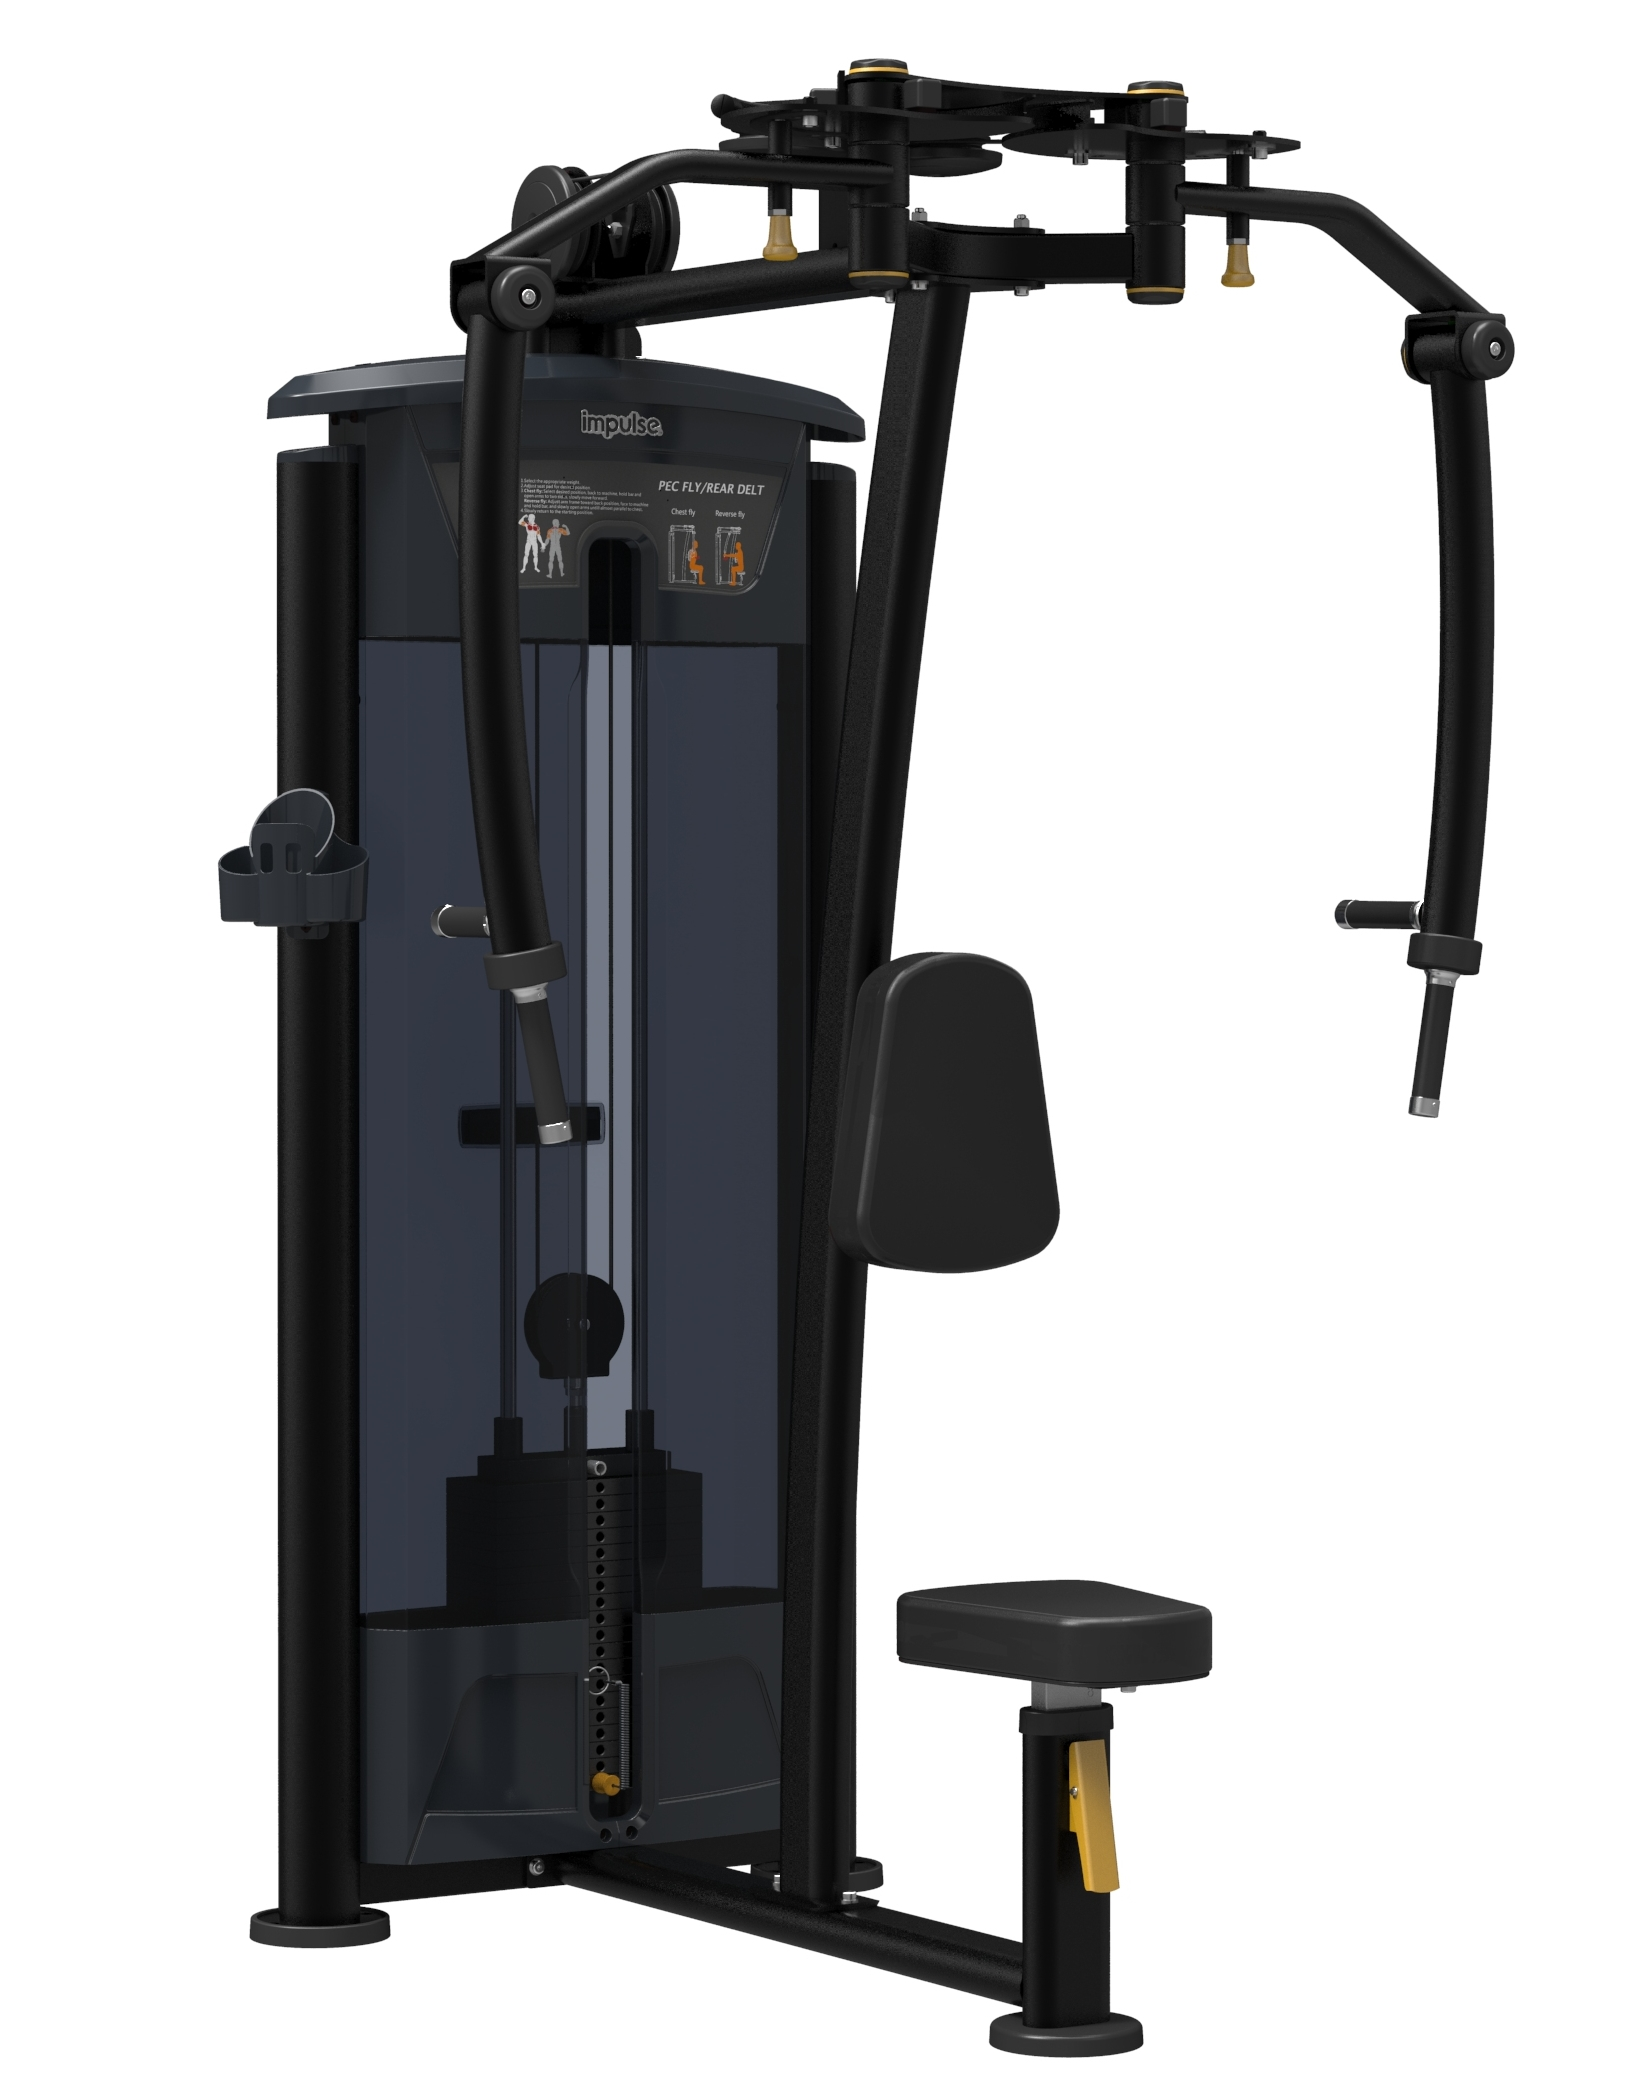 Aparat fluturari piept / deltoid IT 9515 Impulse Fitness imagine